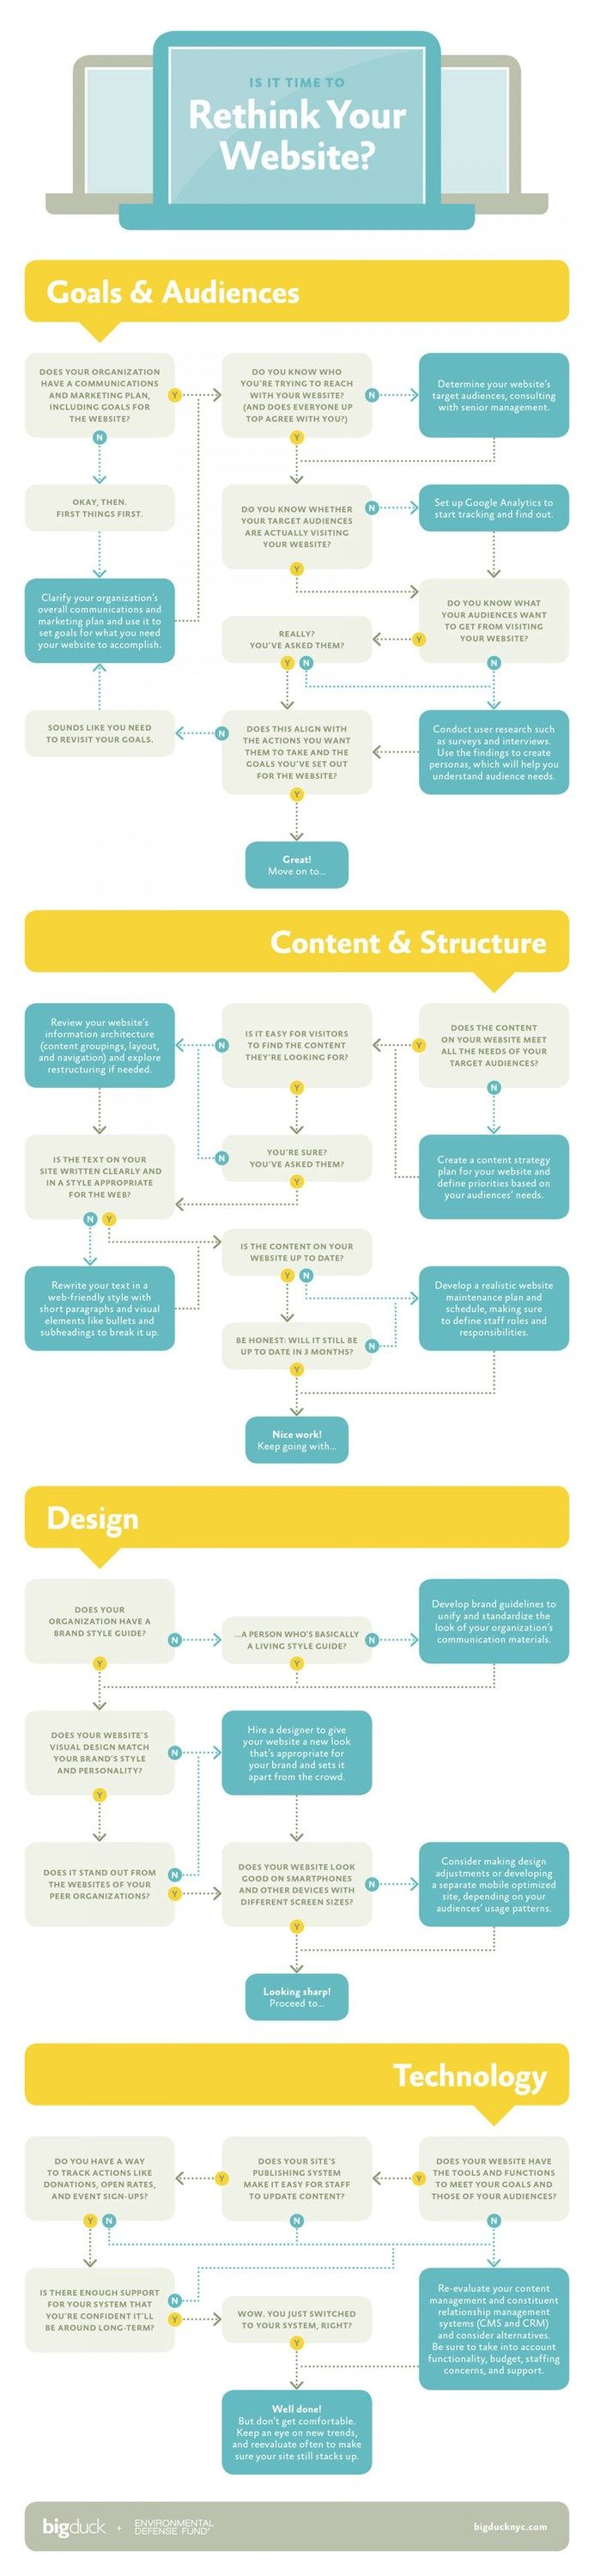 Is it Time to Rethink Your Website? Handy infographic with lots of useful things to consider.